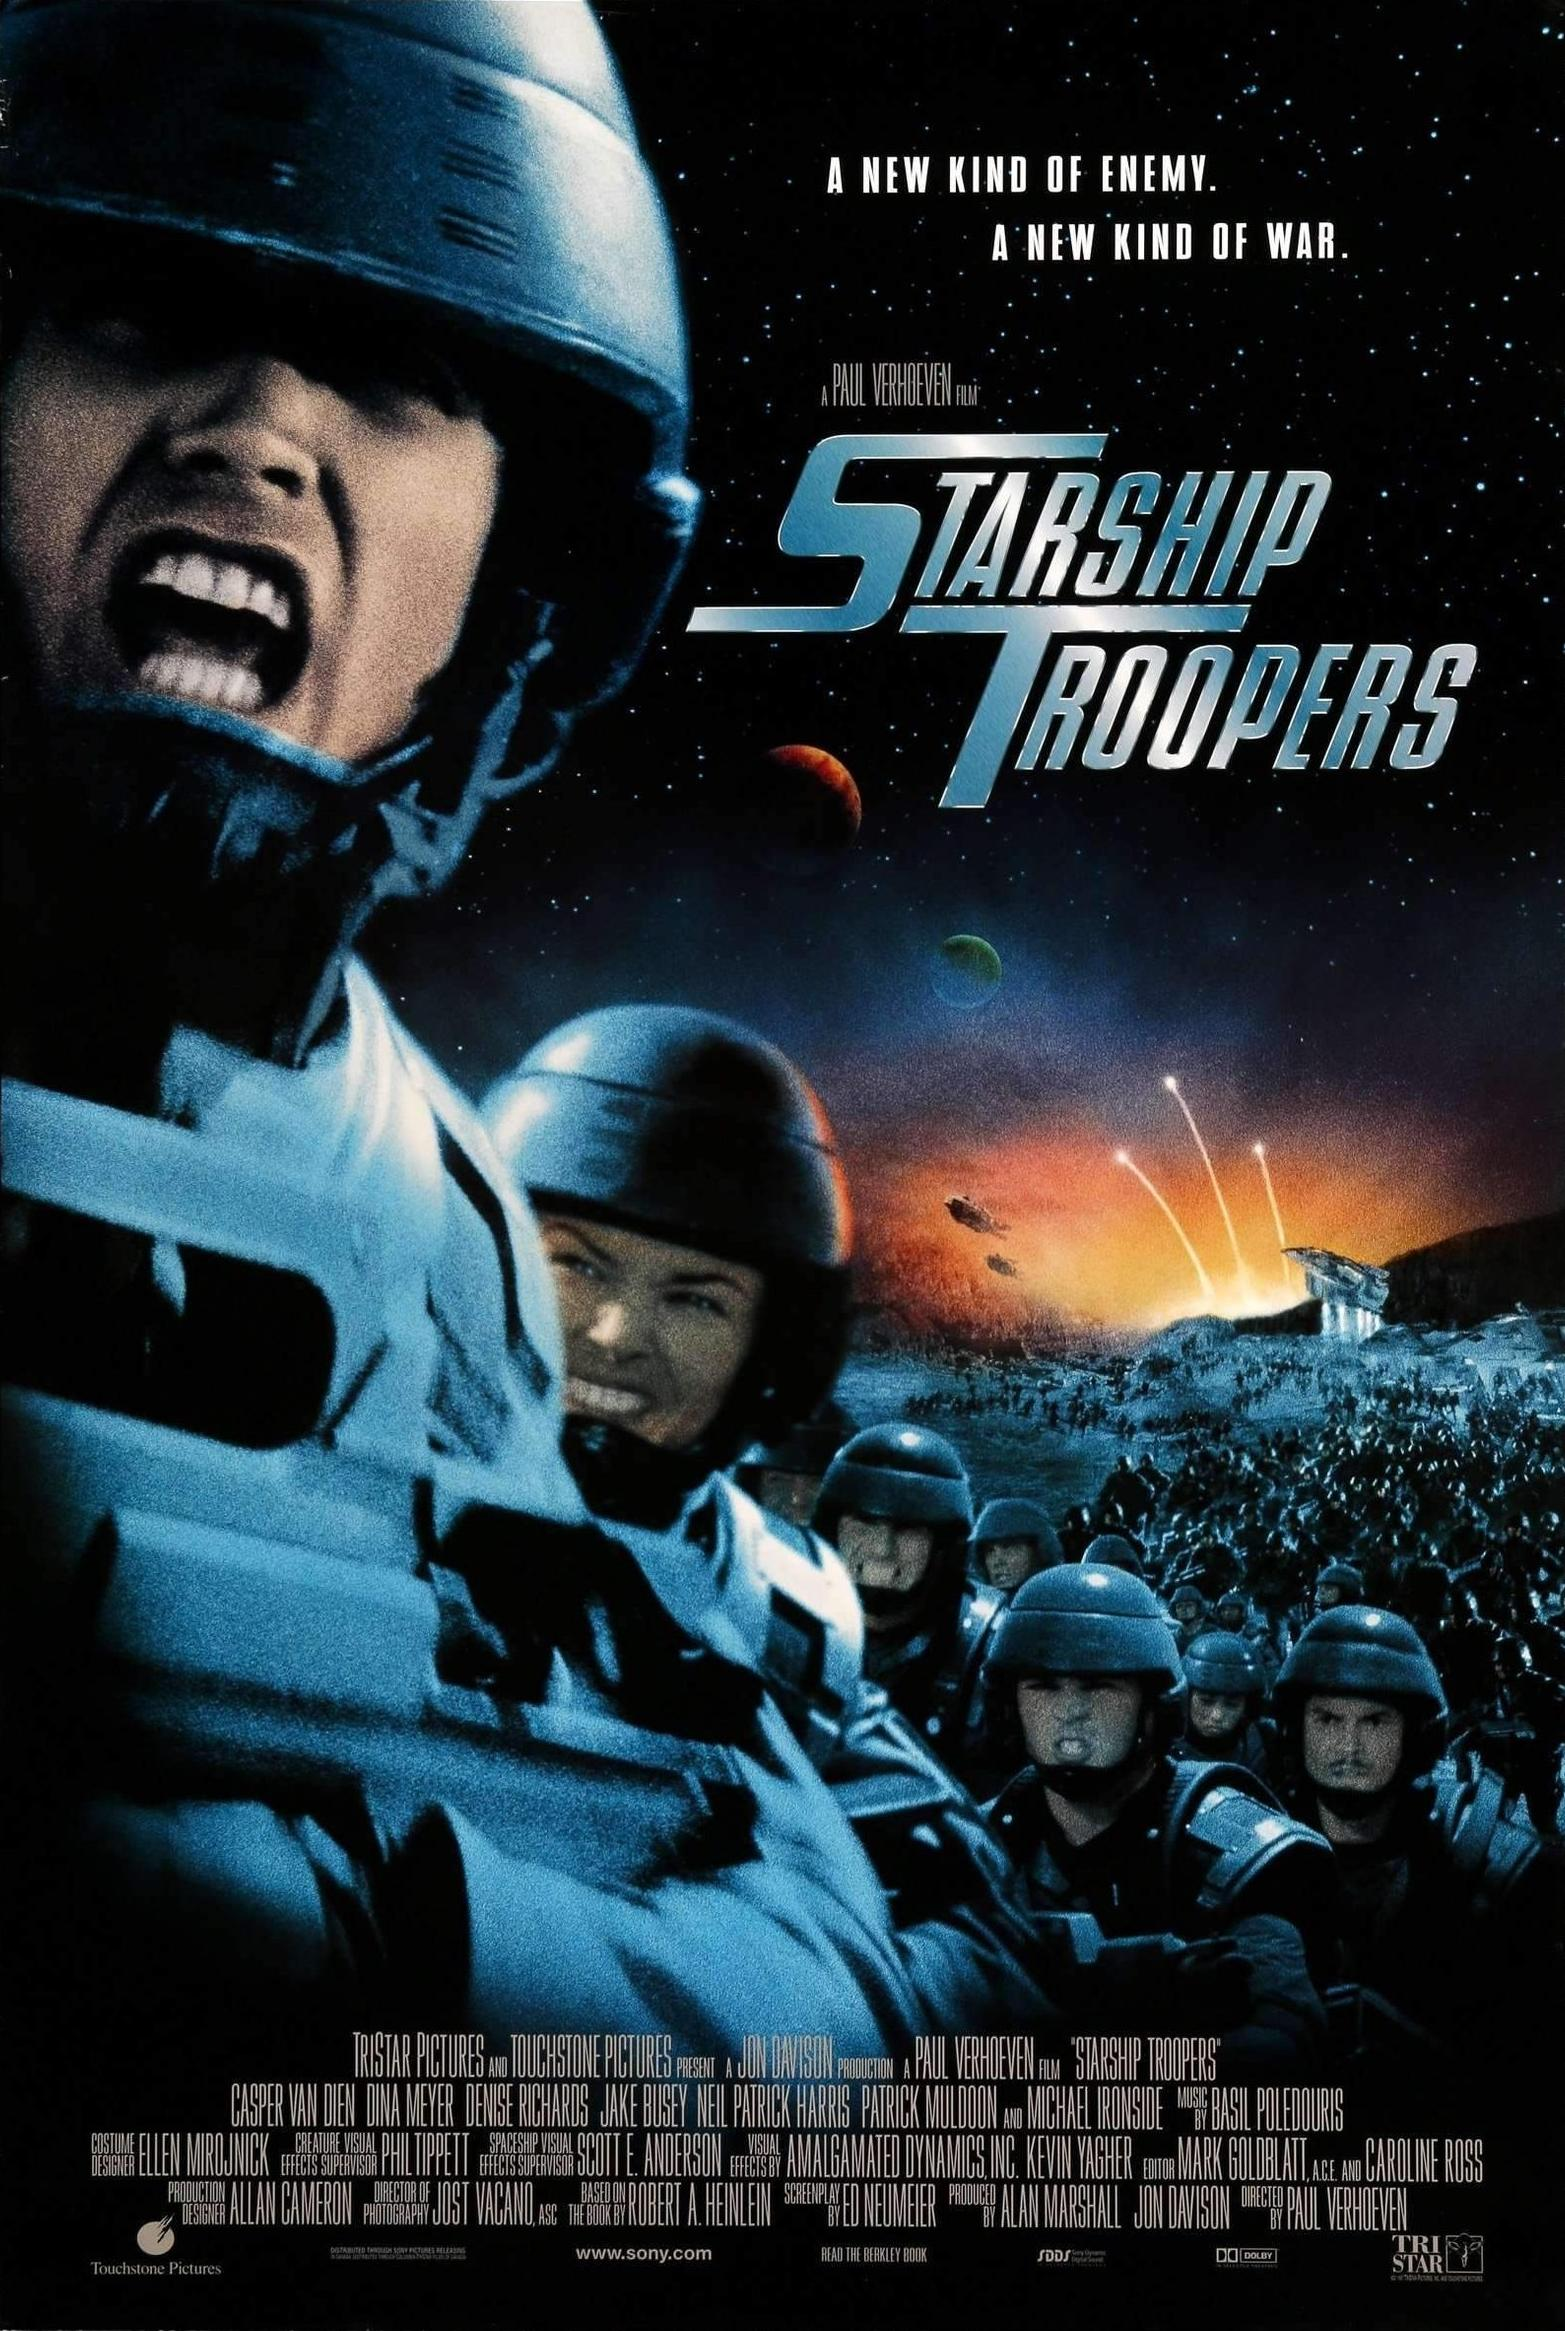 Starship Troopers (1997) - Directed by: Paul VerhoevenStarring: Casper Van Dien, Denise Richards, Dina Meyer, Jake Busey, Neil Patrick Harris, Clancy Brown, Patrick Muldoon, Michael IronsideRated: R for Graphic Sci-Fi Violence and Gore, and For Some Language and NudityRunning Time: 2 h 9 mTMM Score: 4 stars out of 5STRENGTHS: Writing, World Building, Directing, Satire, FunWEAKNESSES: Pacing During First Half